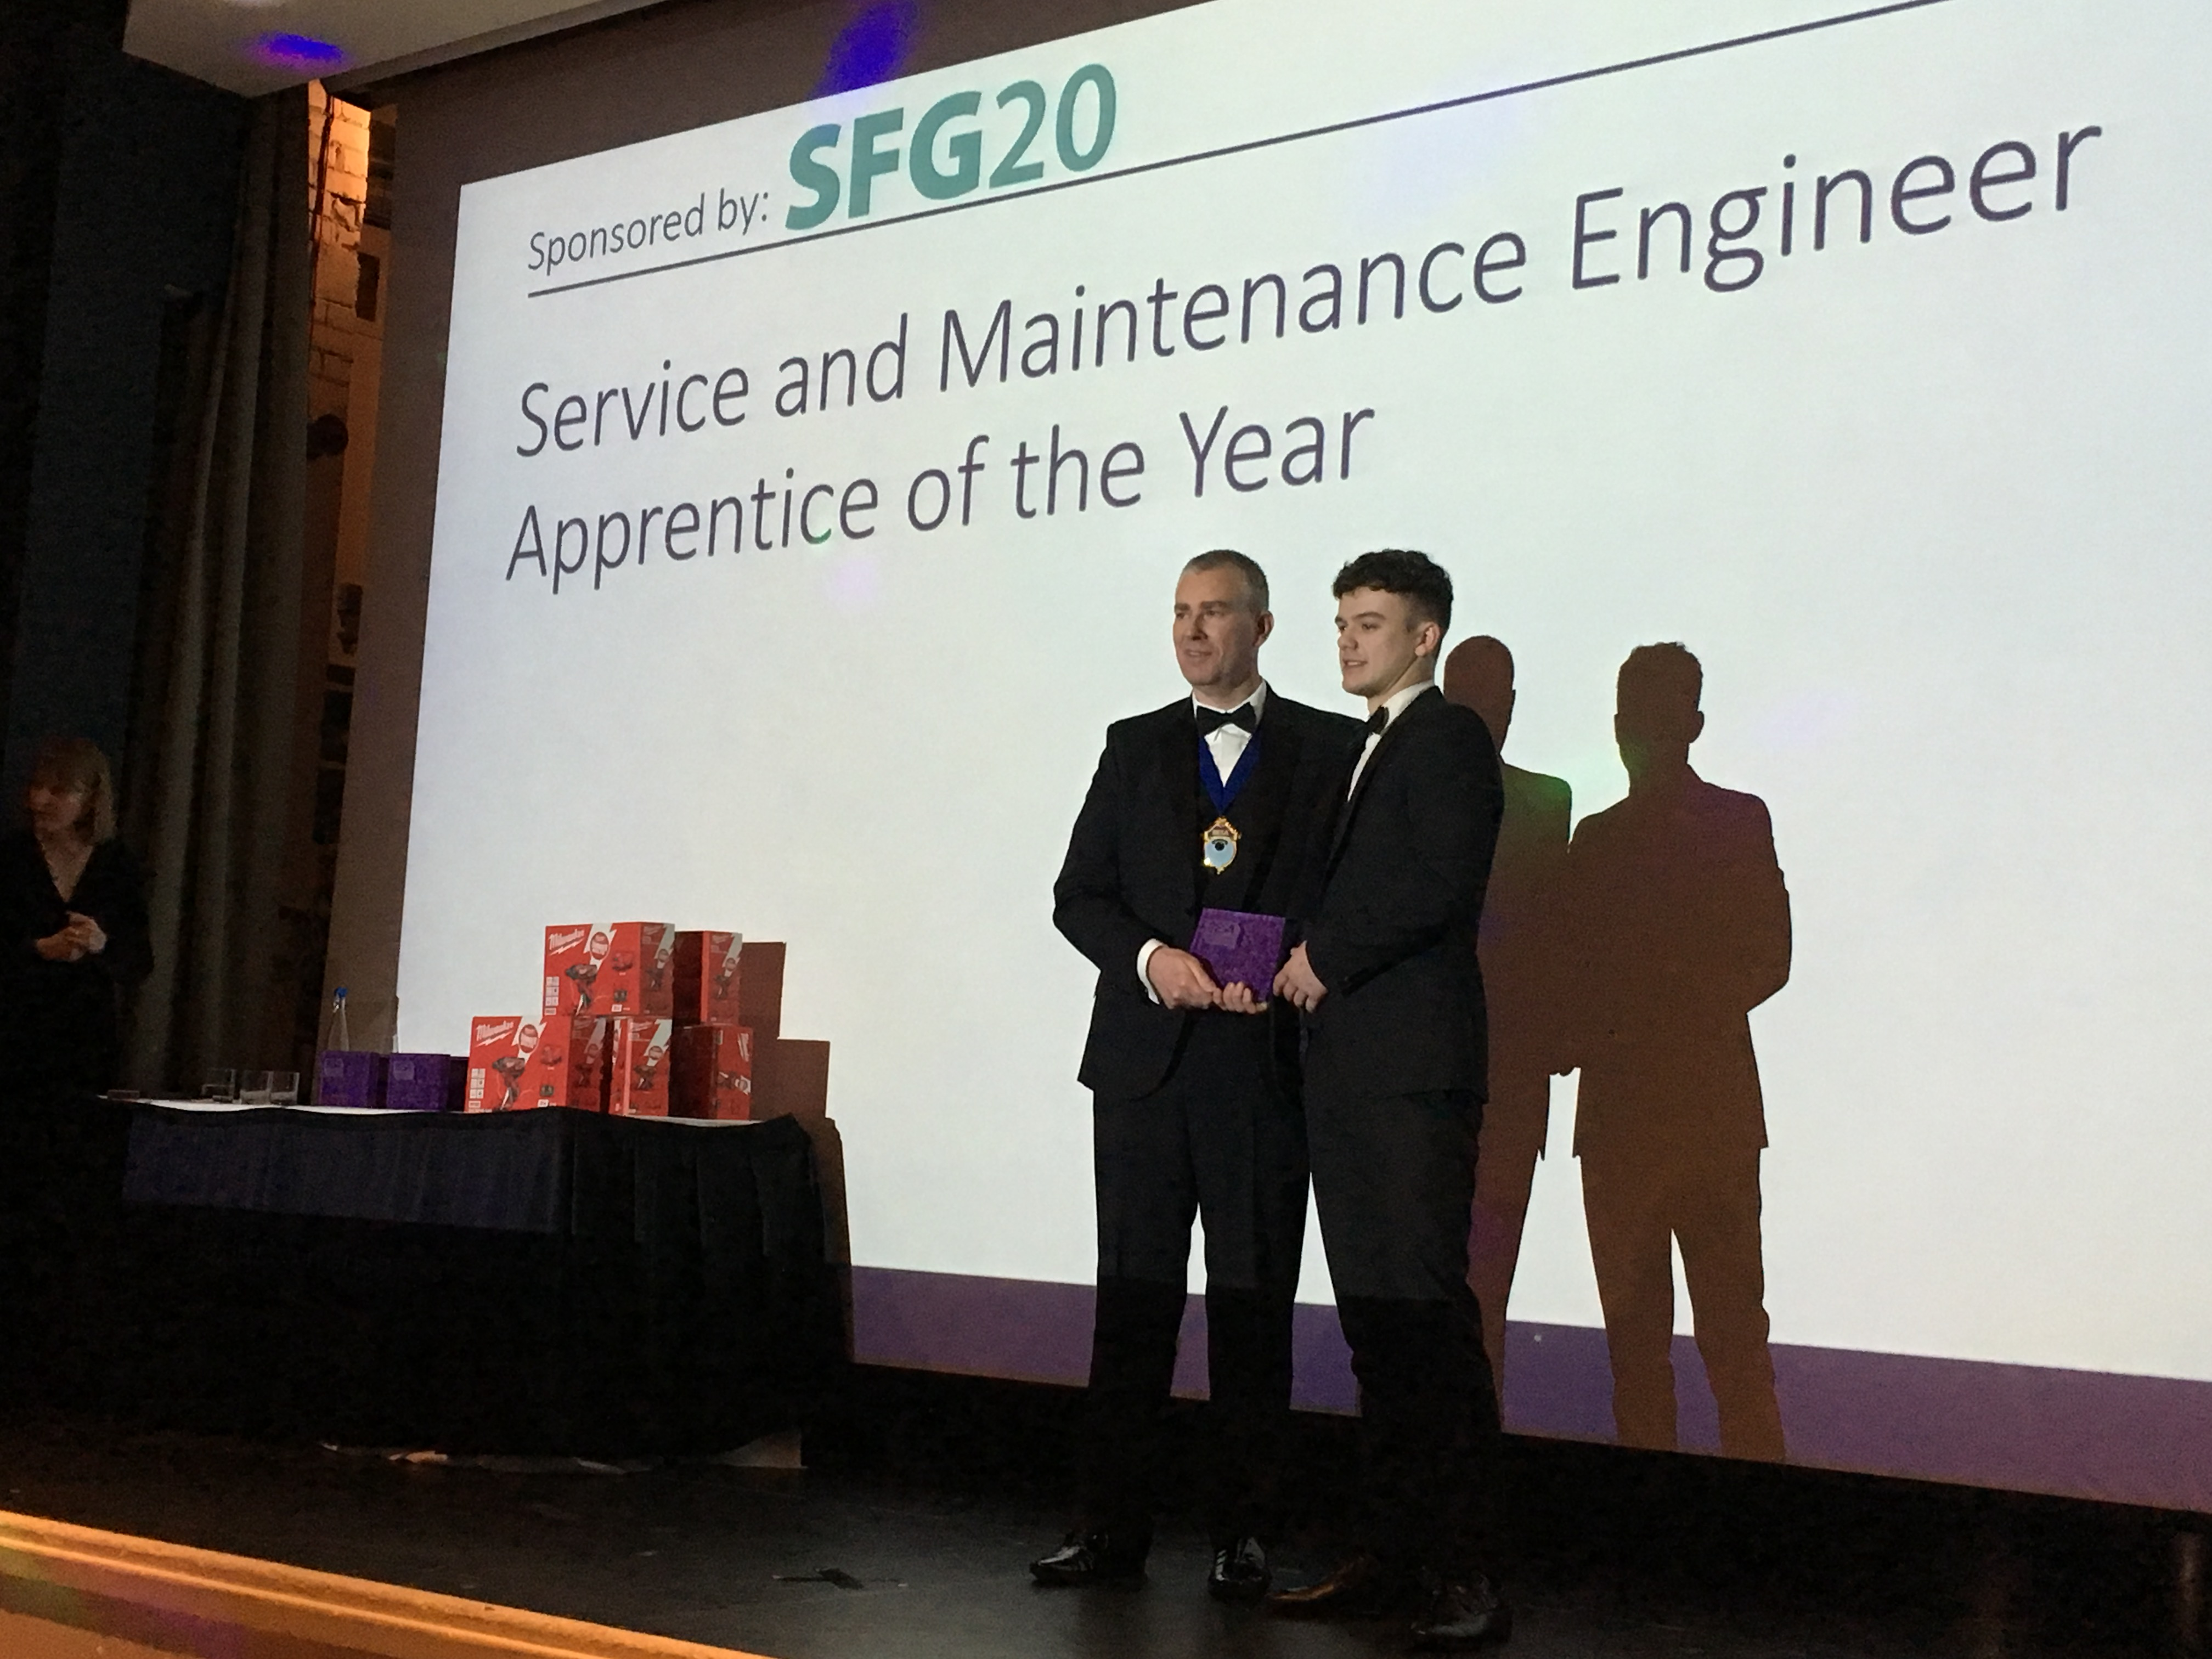 Jack Hughes - Service & Maintenance Apprentice of the Year Winner